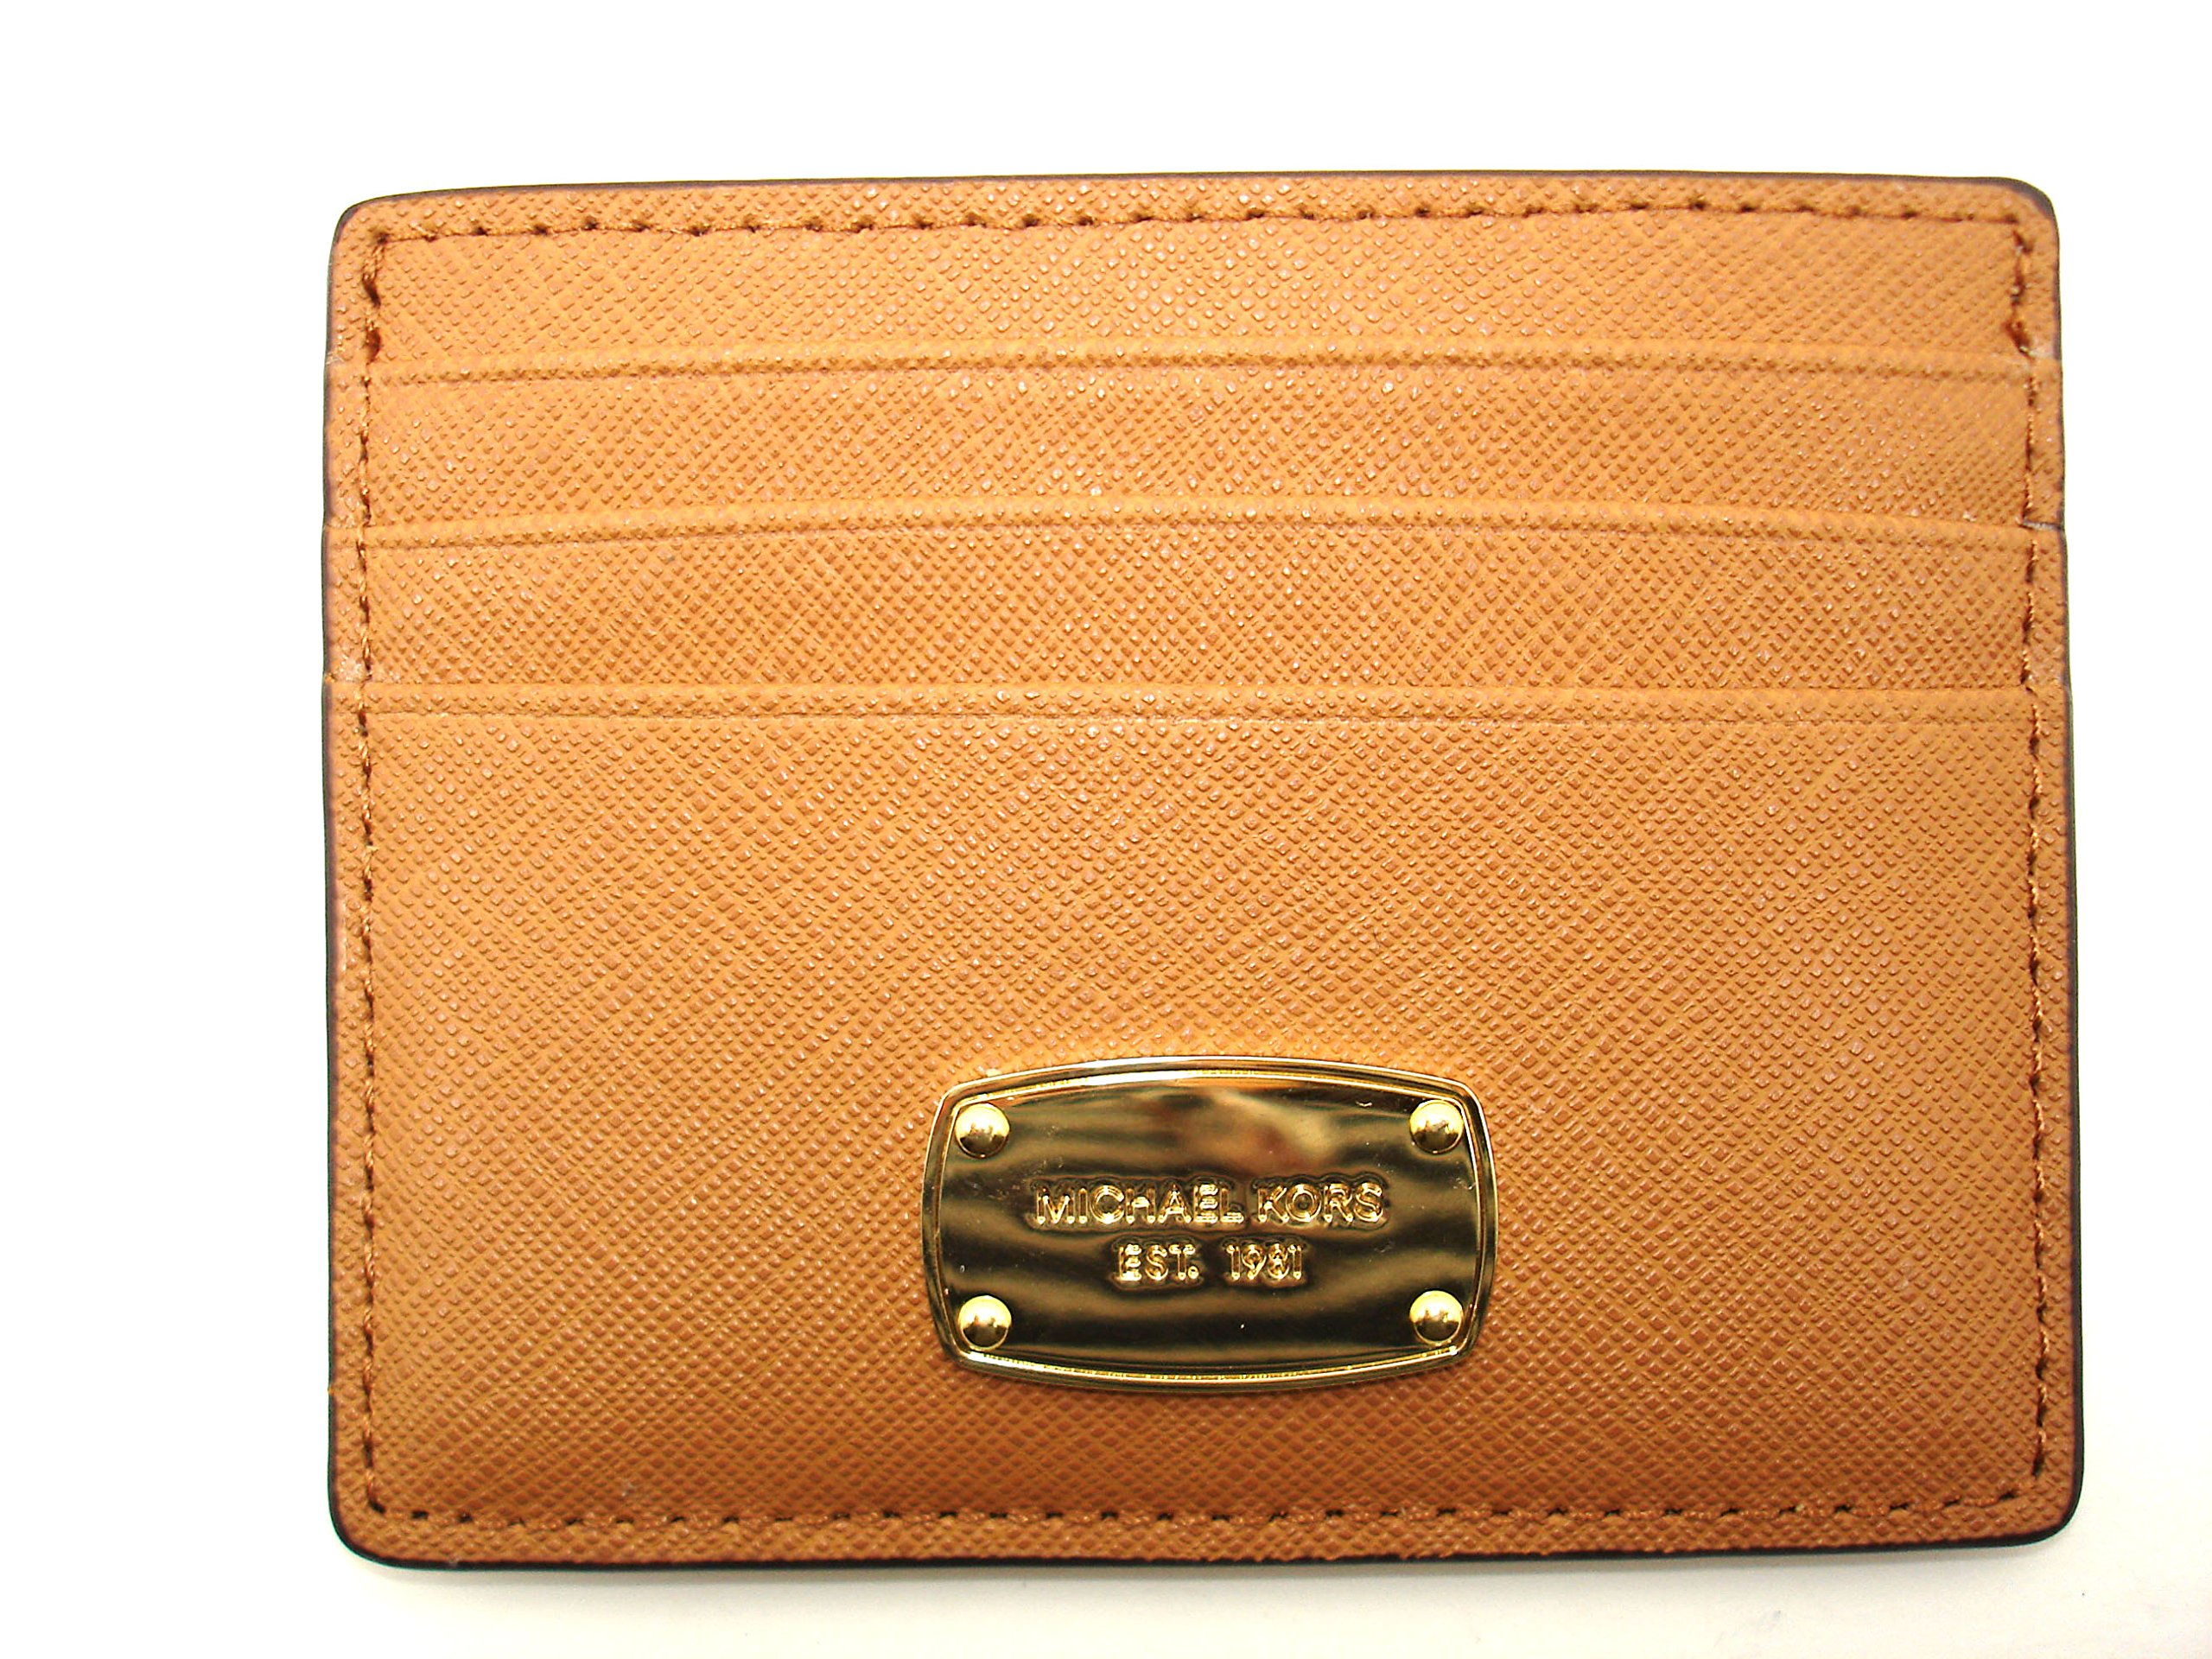 MICHAEL Michael Kors Jet Set Travel Large ID Card Holder Saffiano Leather Acorn